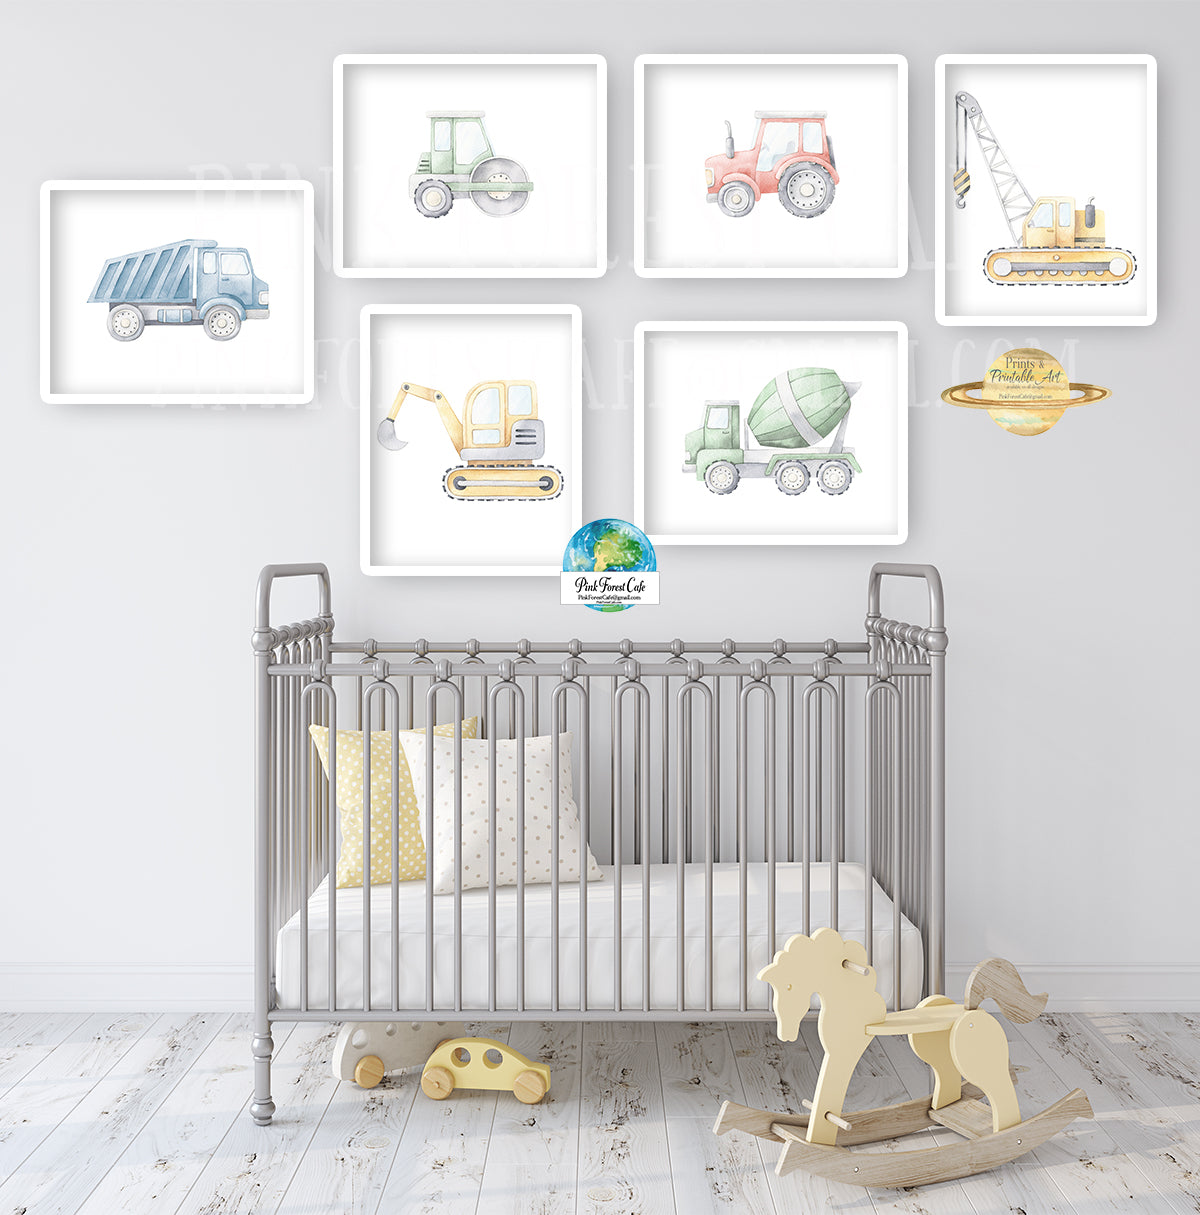 6 Construction Truck Digger Wall Art Print Boy Nursery Room Set Prints Printable Décor